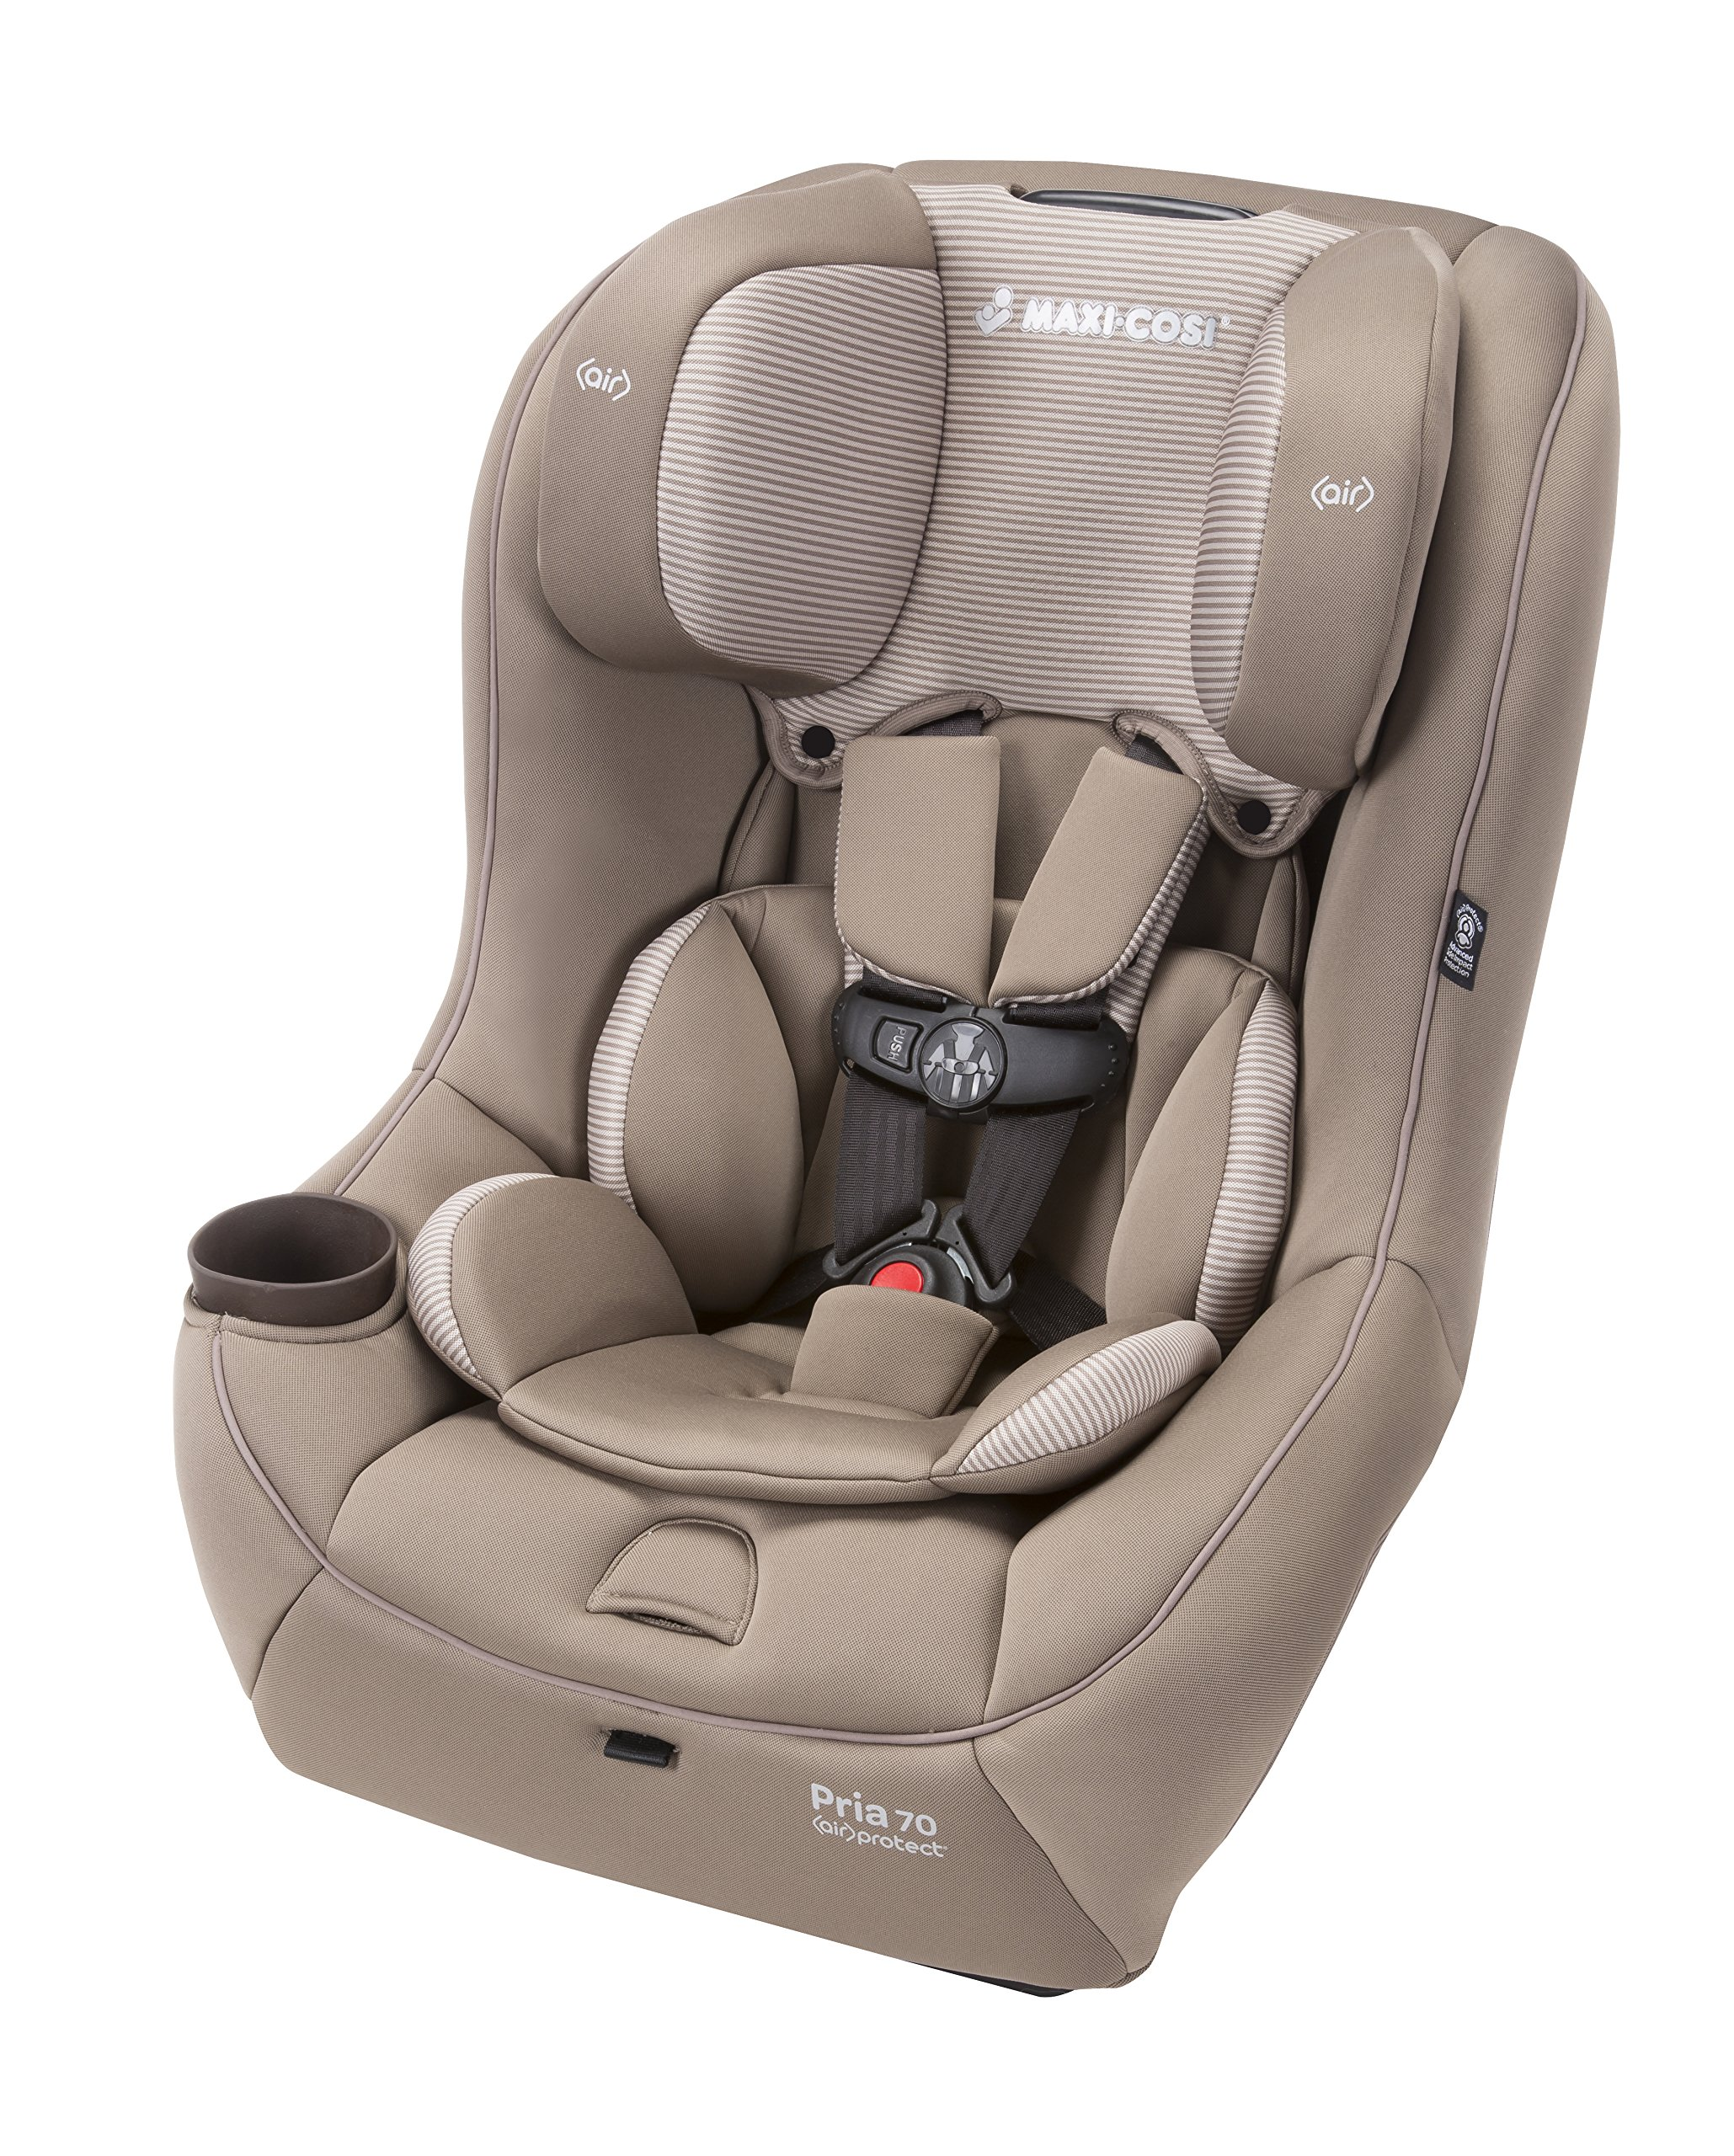 maxi cosi pria 70 convertible car seat. Black Bedroom Furniture Sets. Home Design Ideas